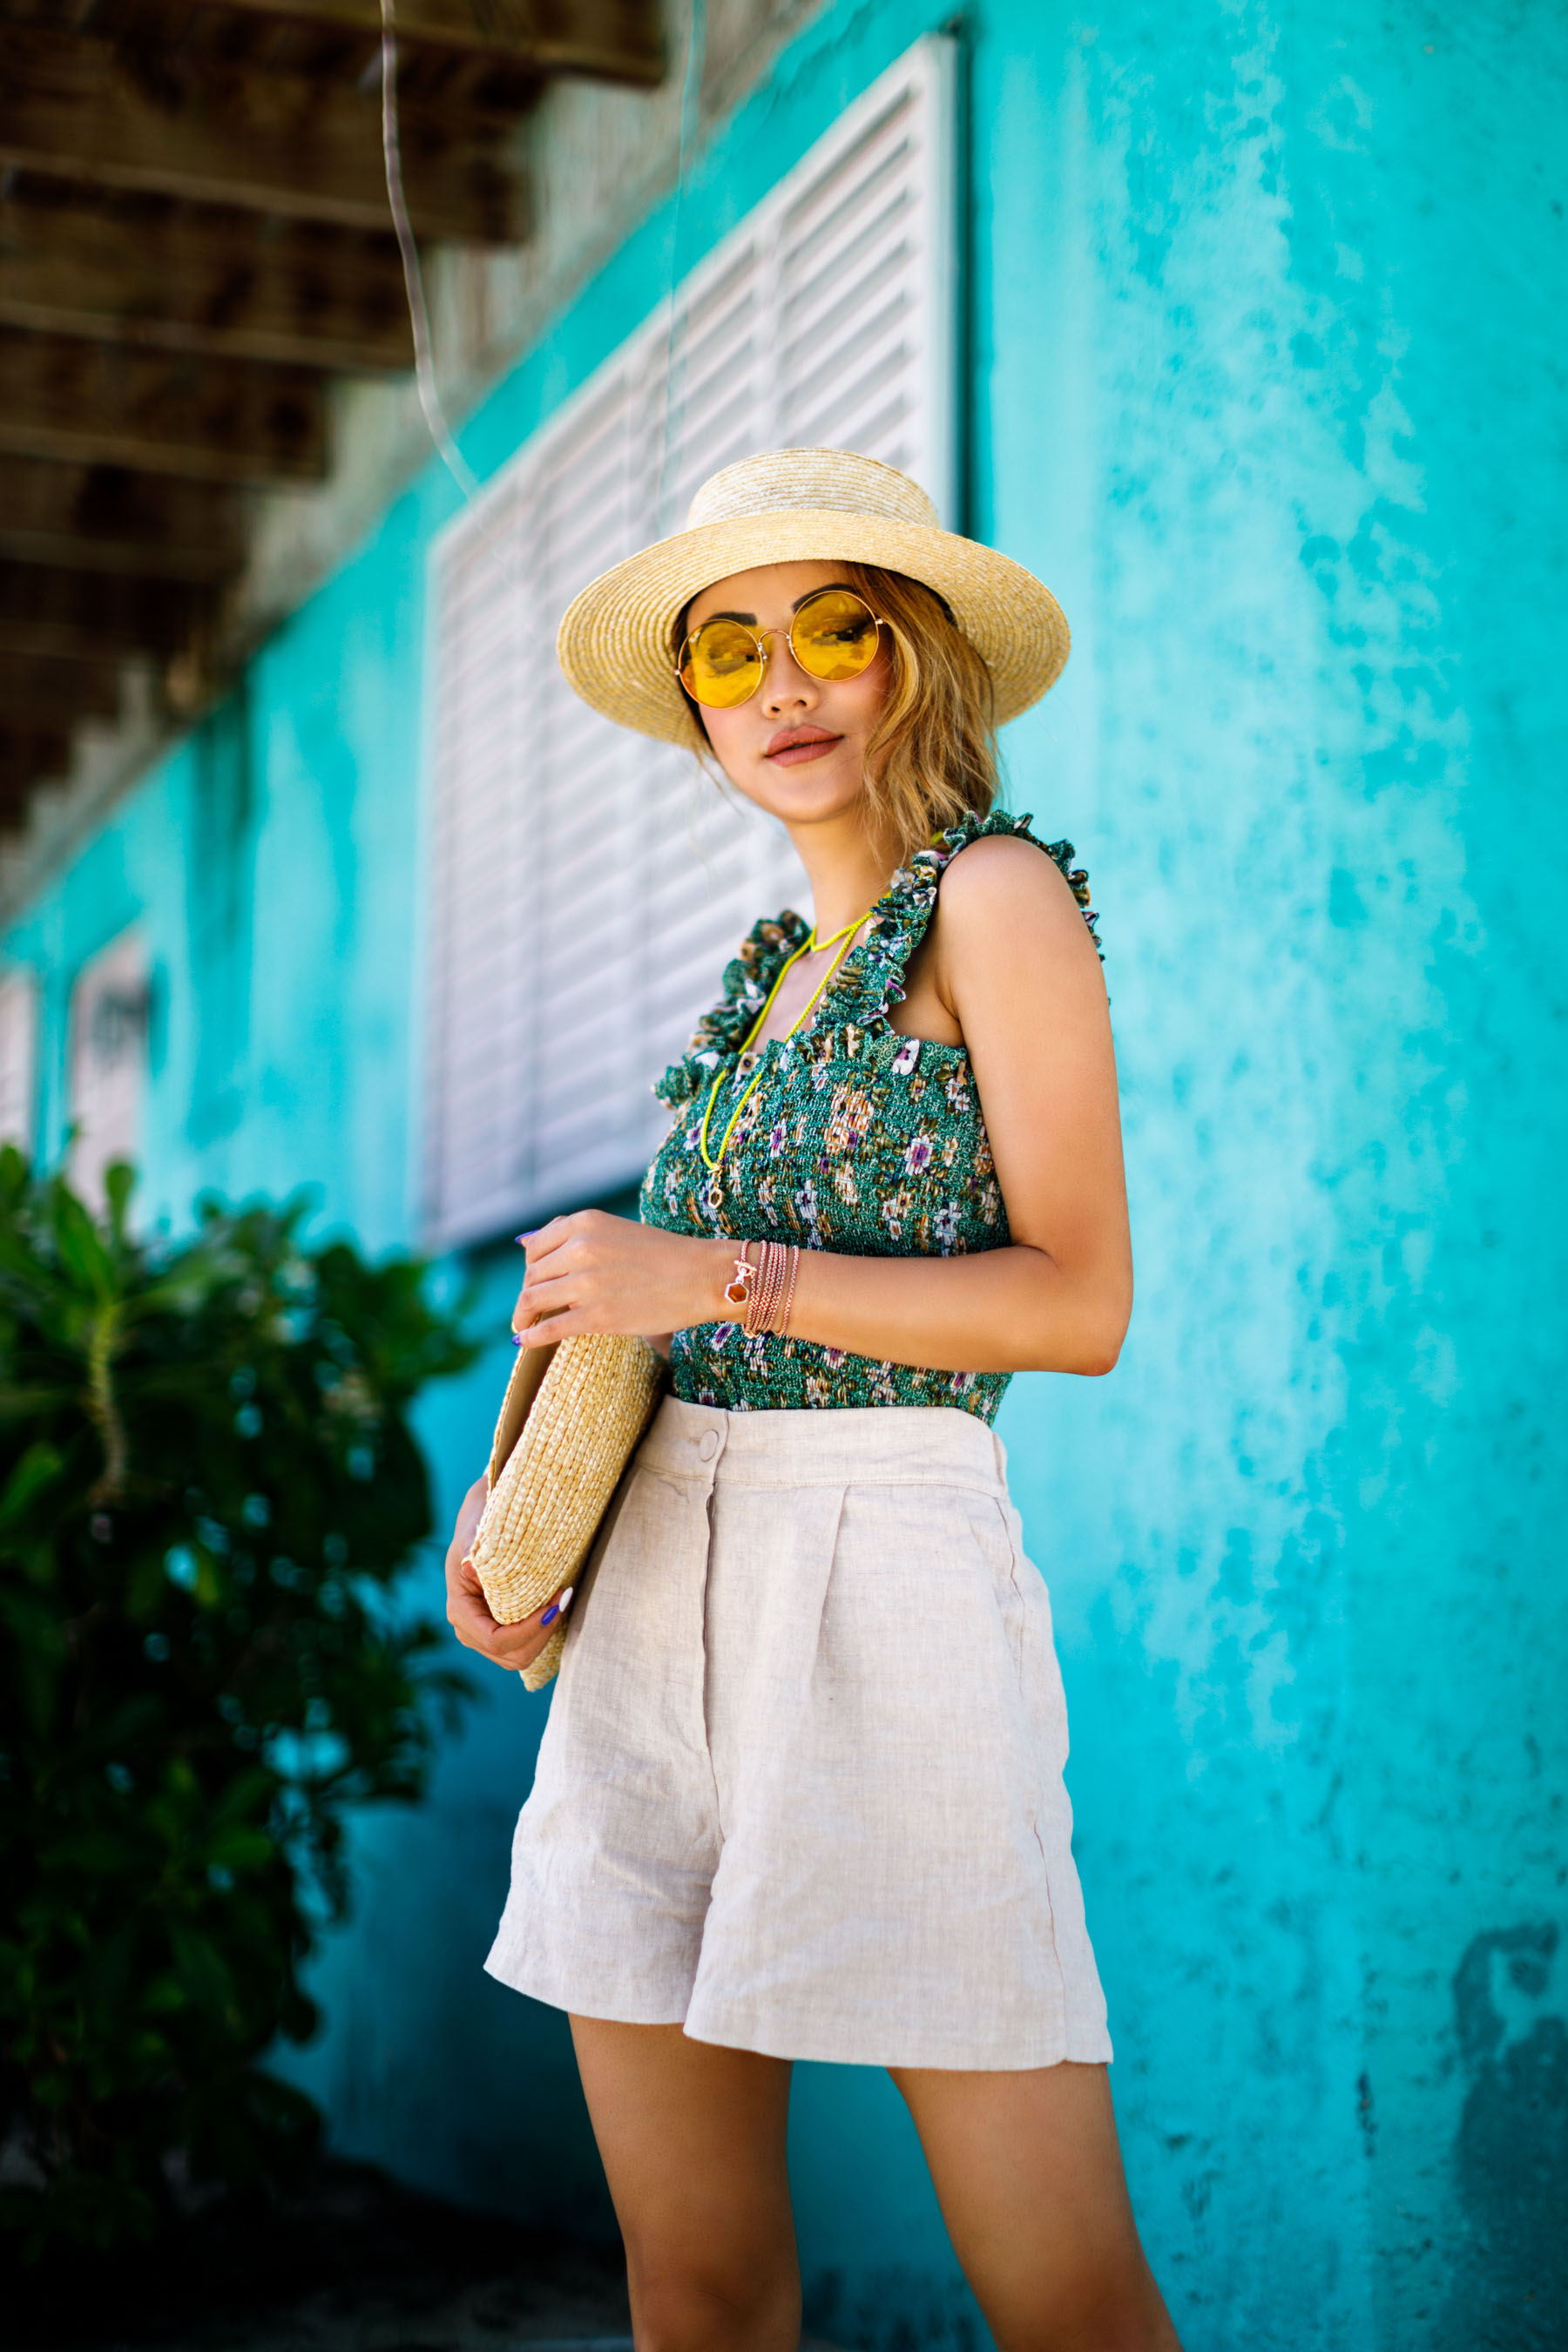 Floral Green Top and DY Bel Aire Jewelry - Free-Spirited Accessories to Compliment Your Summer Style // NotJessFashion.com